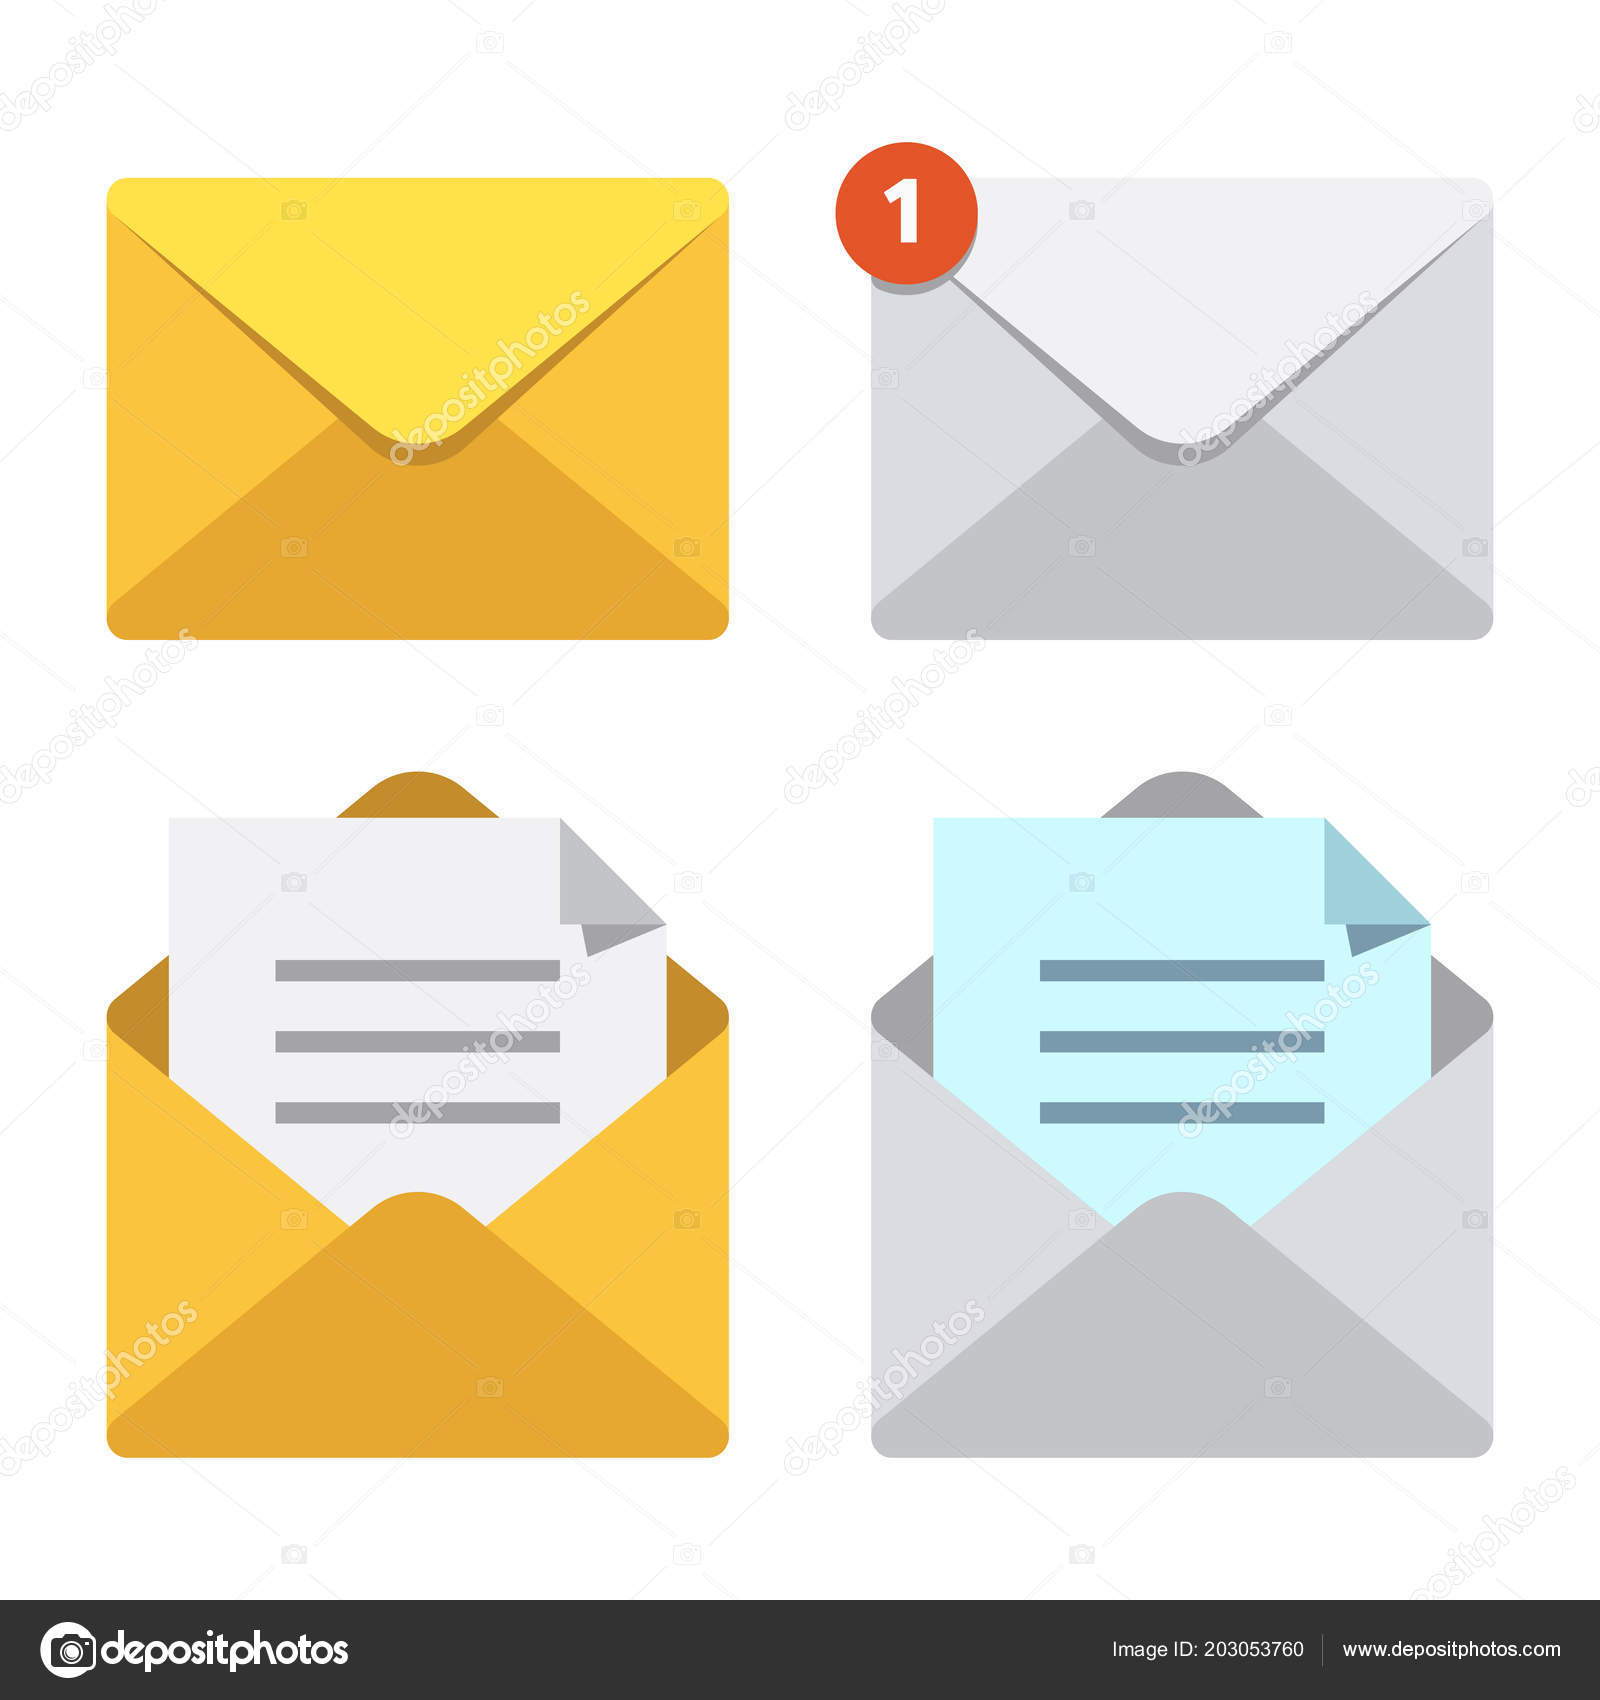 Closed Mailbox Intended Letter In Mail Envelope Mailbox Notification Or Email Message Icons Open Closed Letters Icons